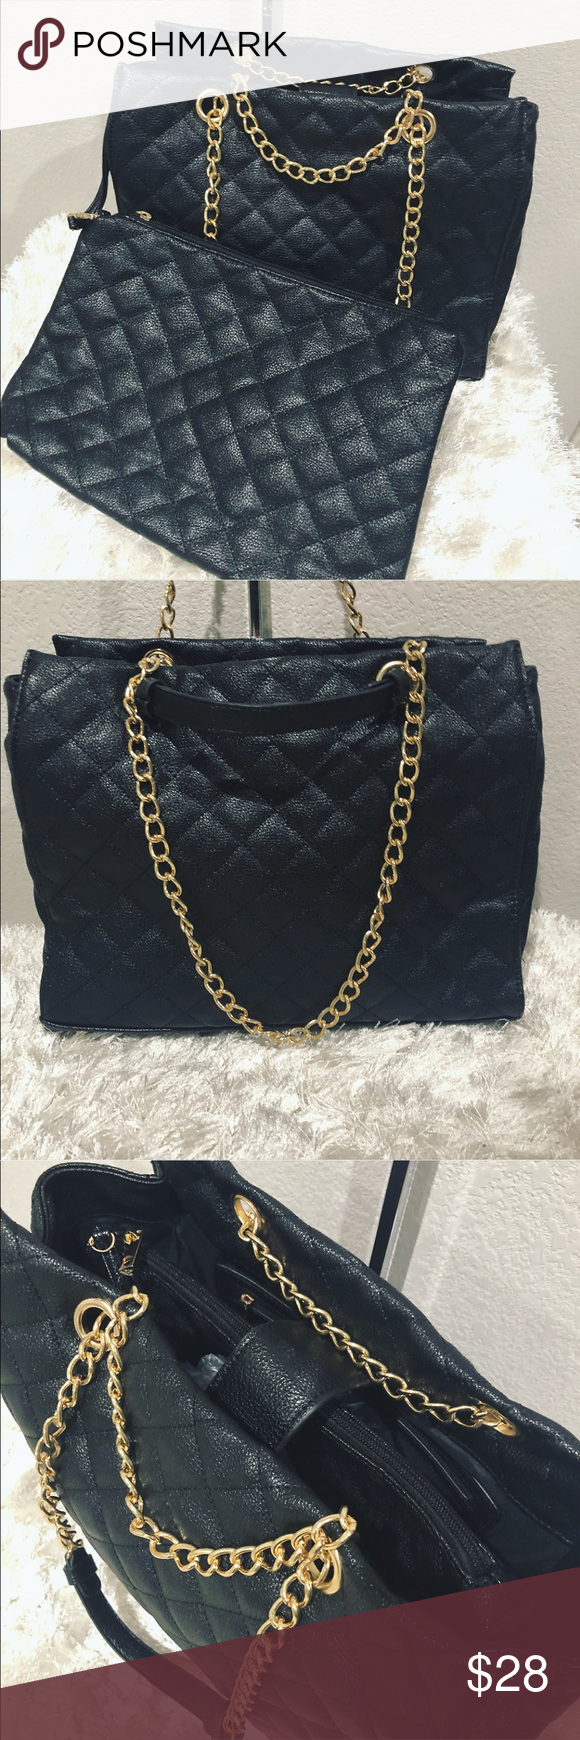 Los Angeles Vintage Purse Museum Manufacturer Index New 2pc Quilted Leather Gold Chain Brand W Dust Bag Bought